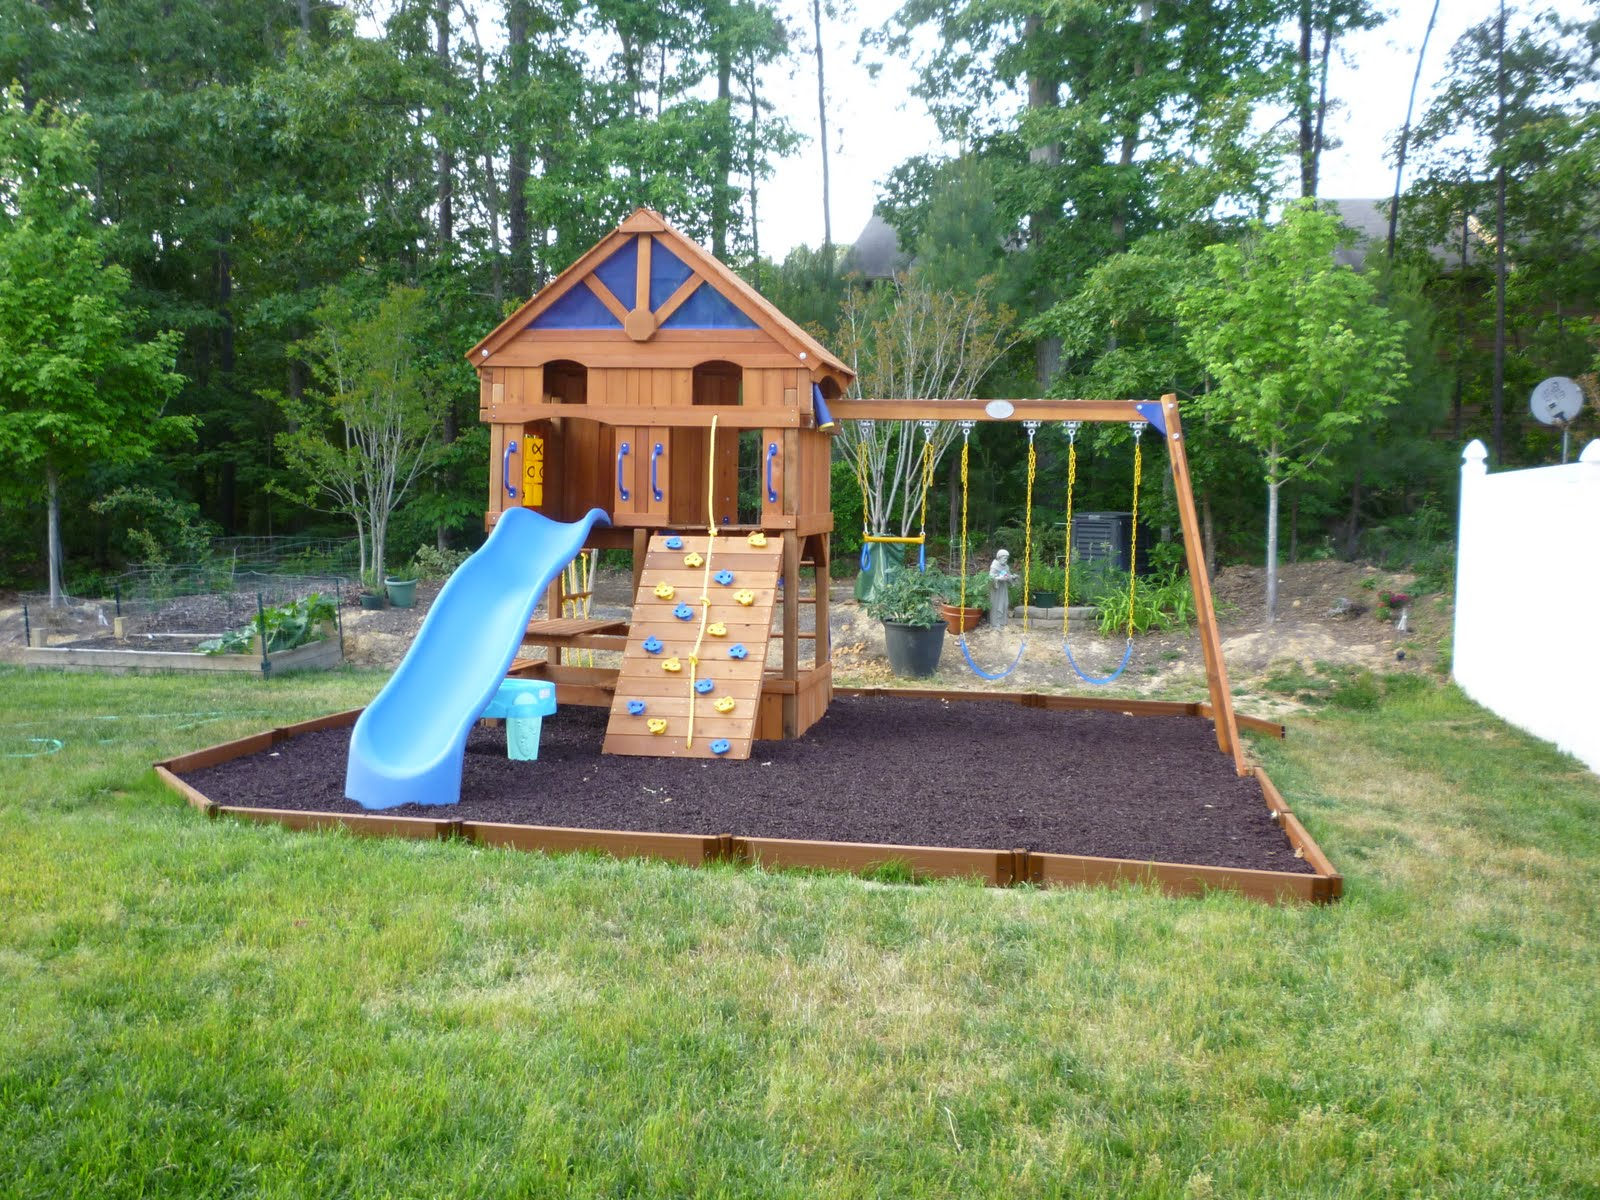 daily house projects: Metamorphosis Monday